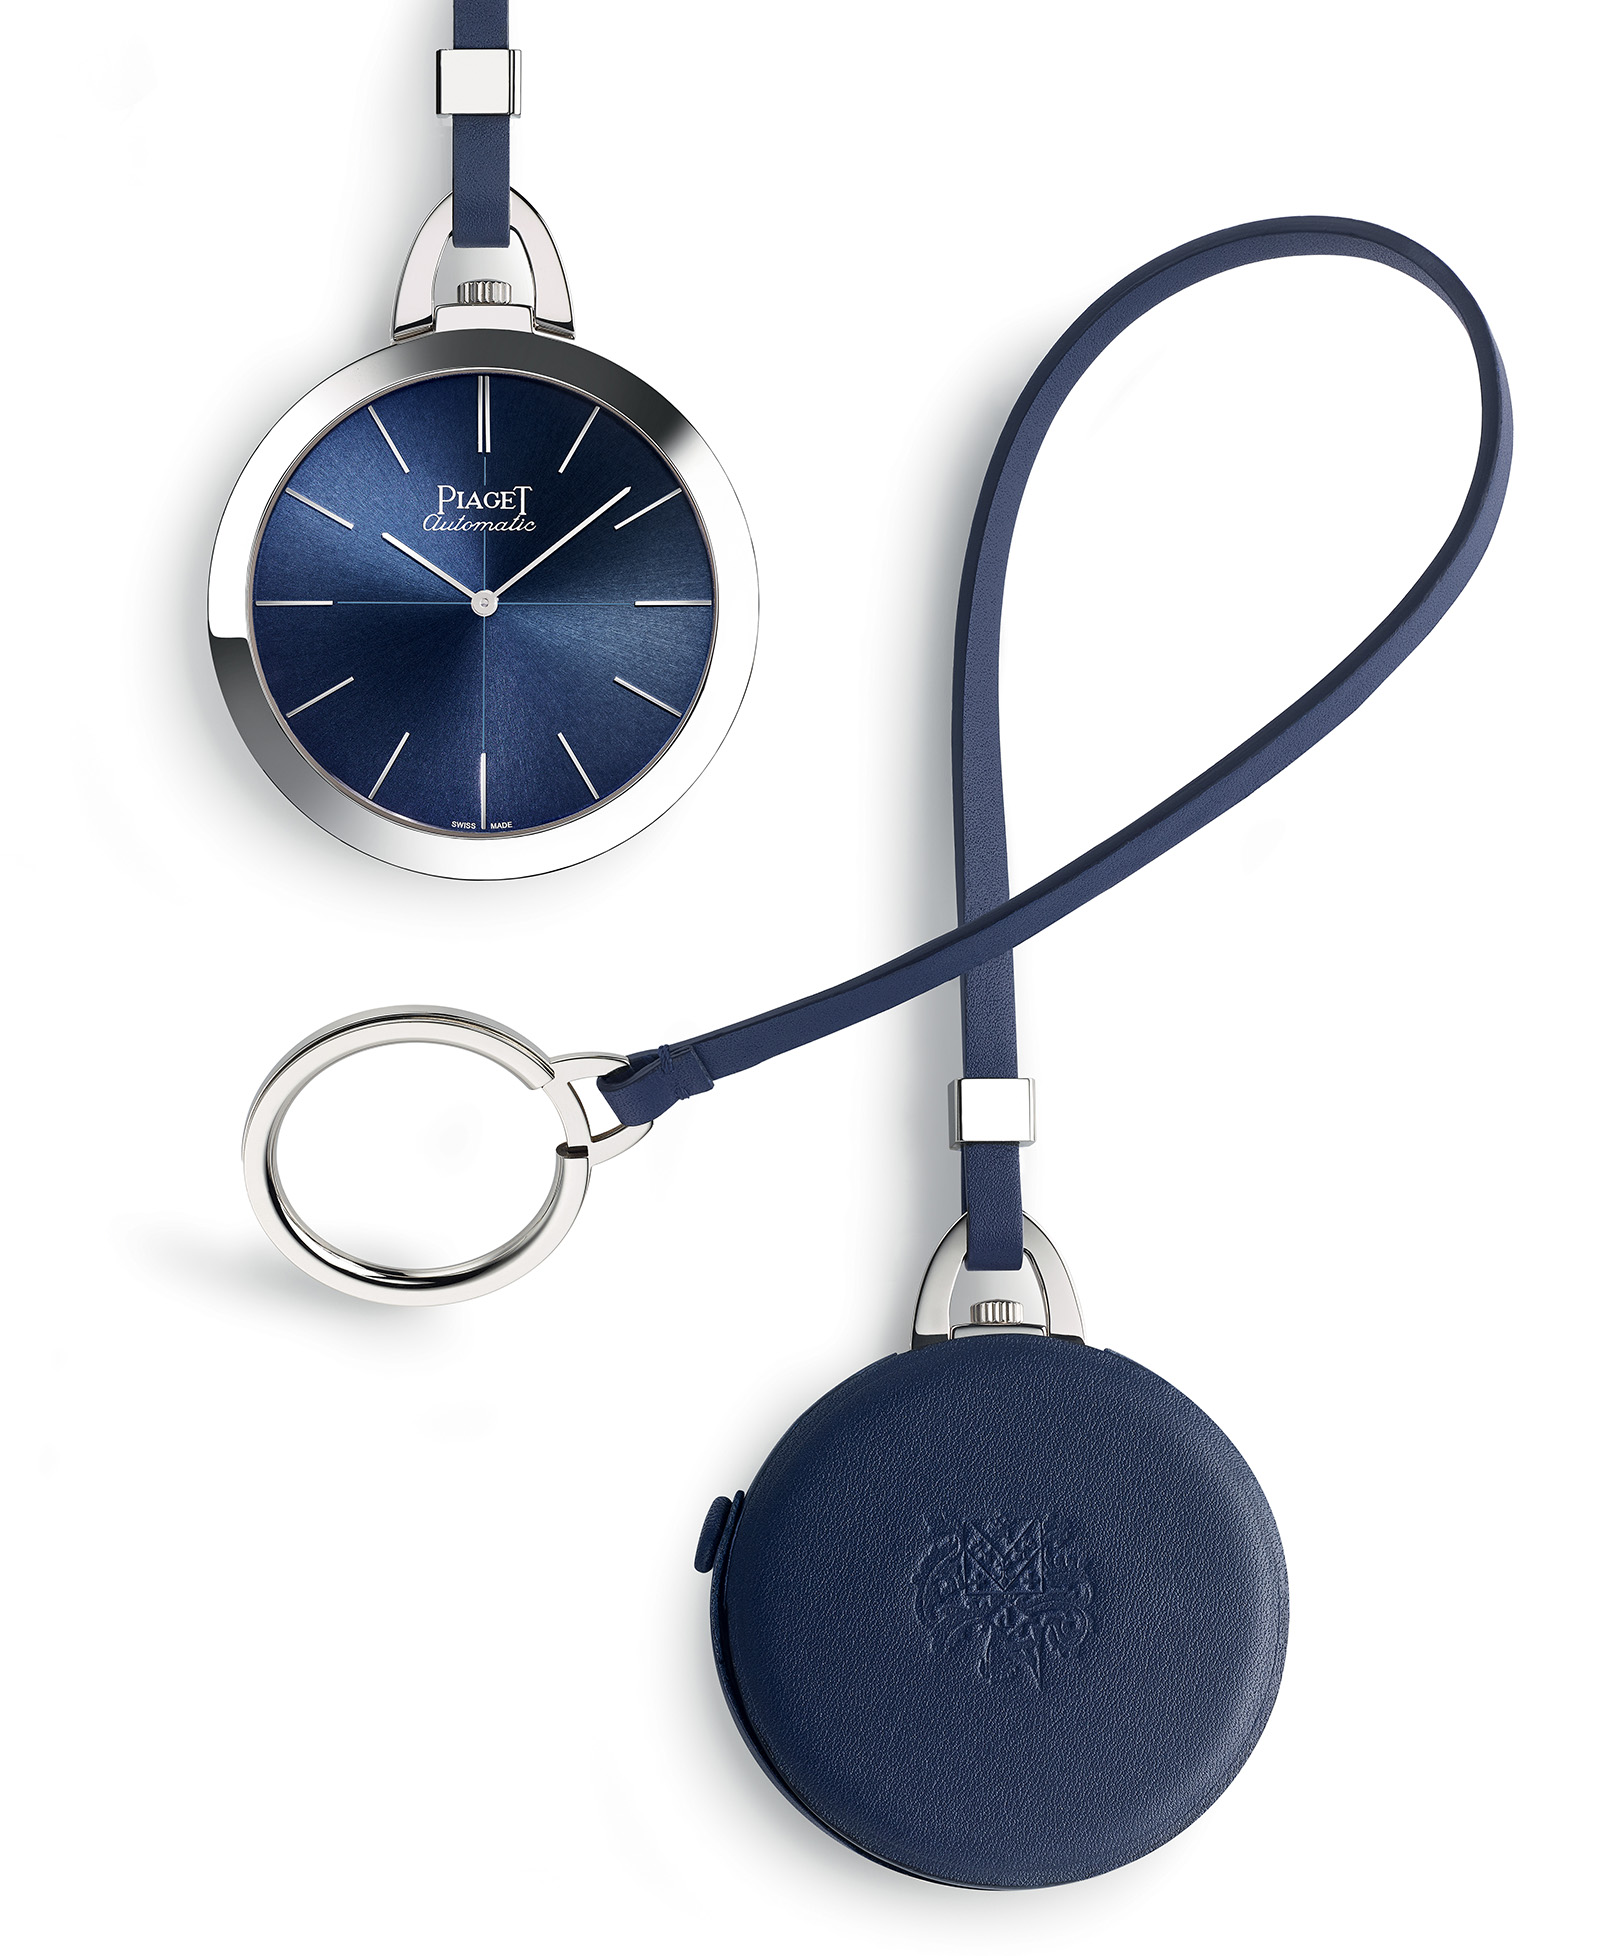 Piaget Altiplano 60th Anniversary Pocket Watch 3